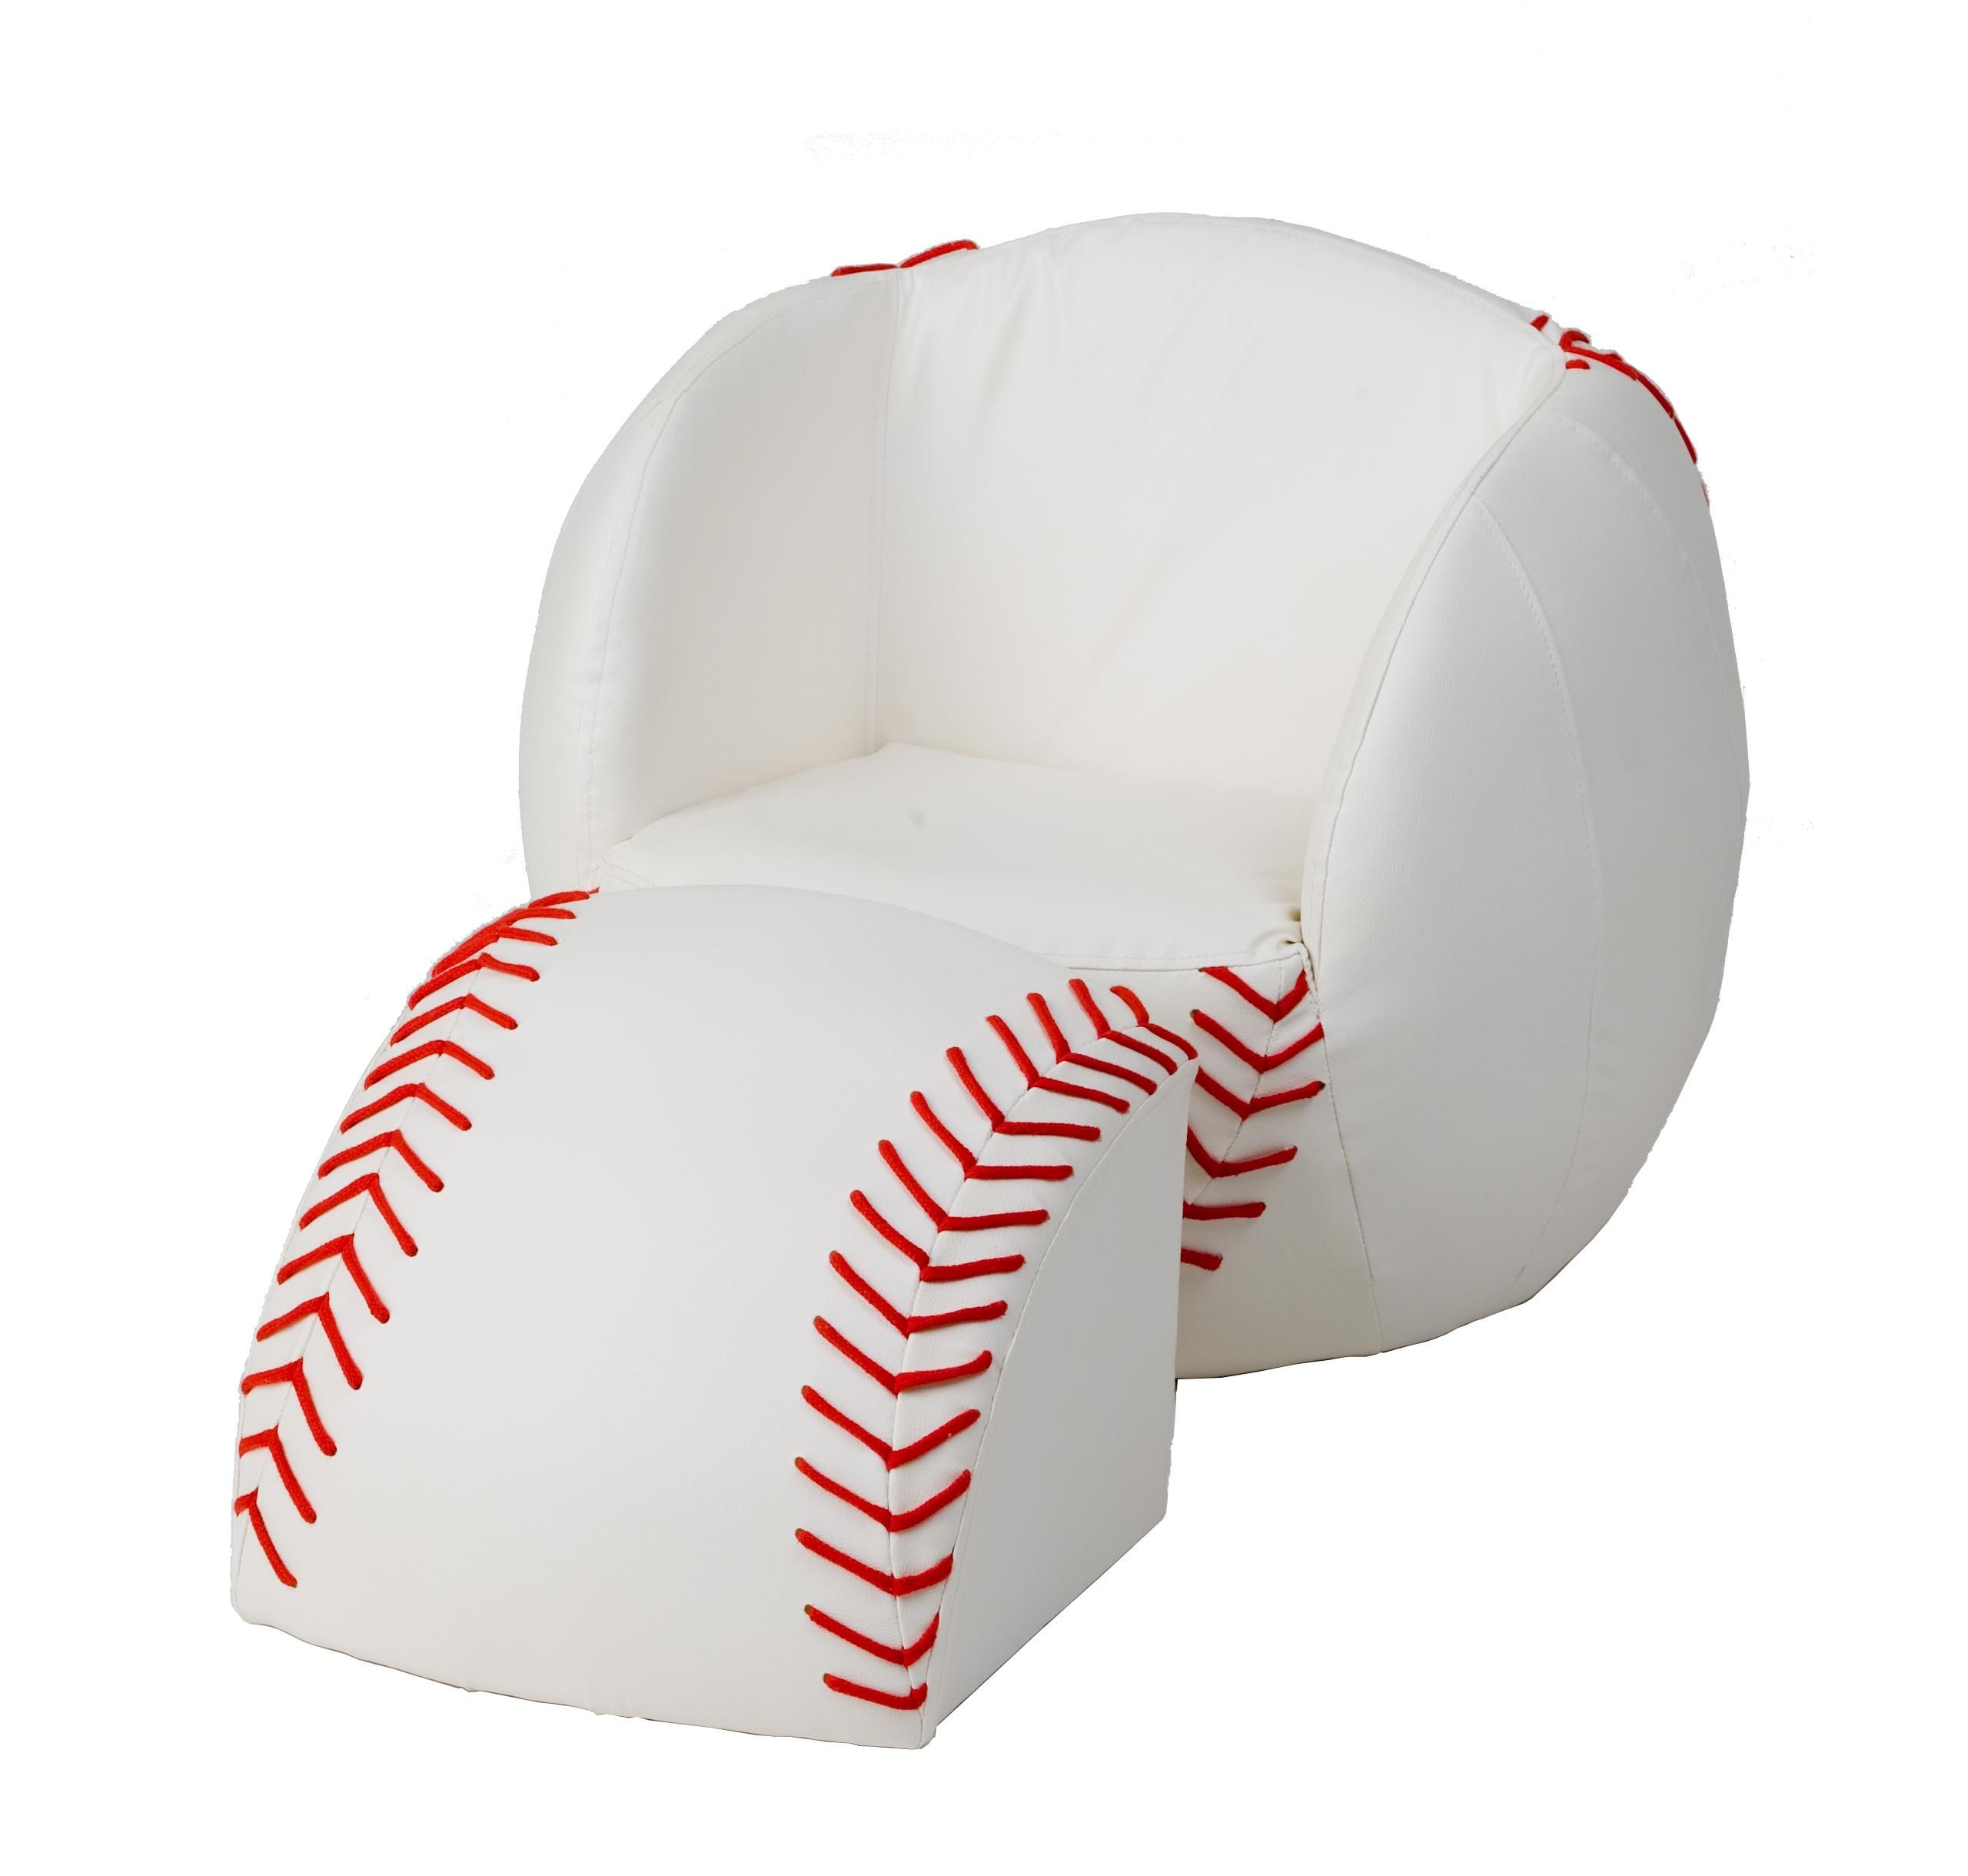 Delicieux Baseball Bean Bag Chair   Ideas On Foter